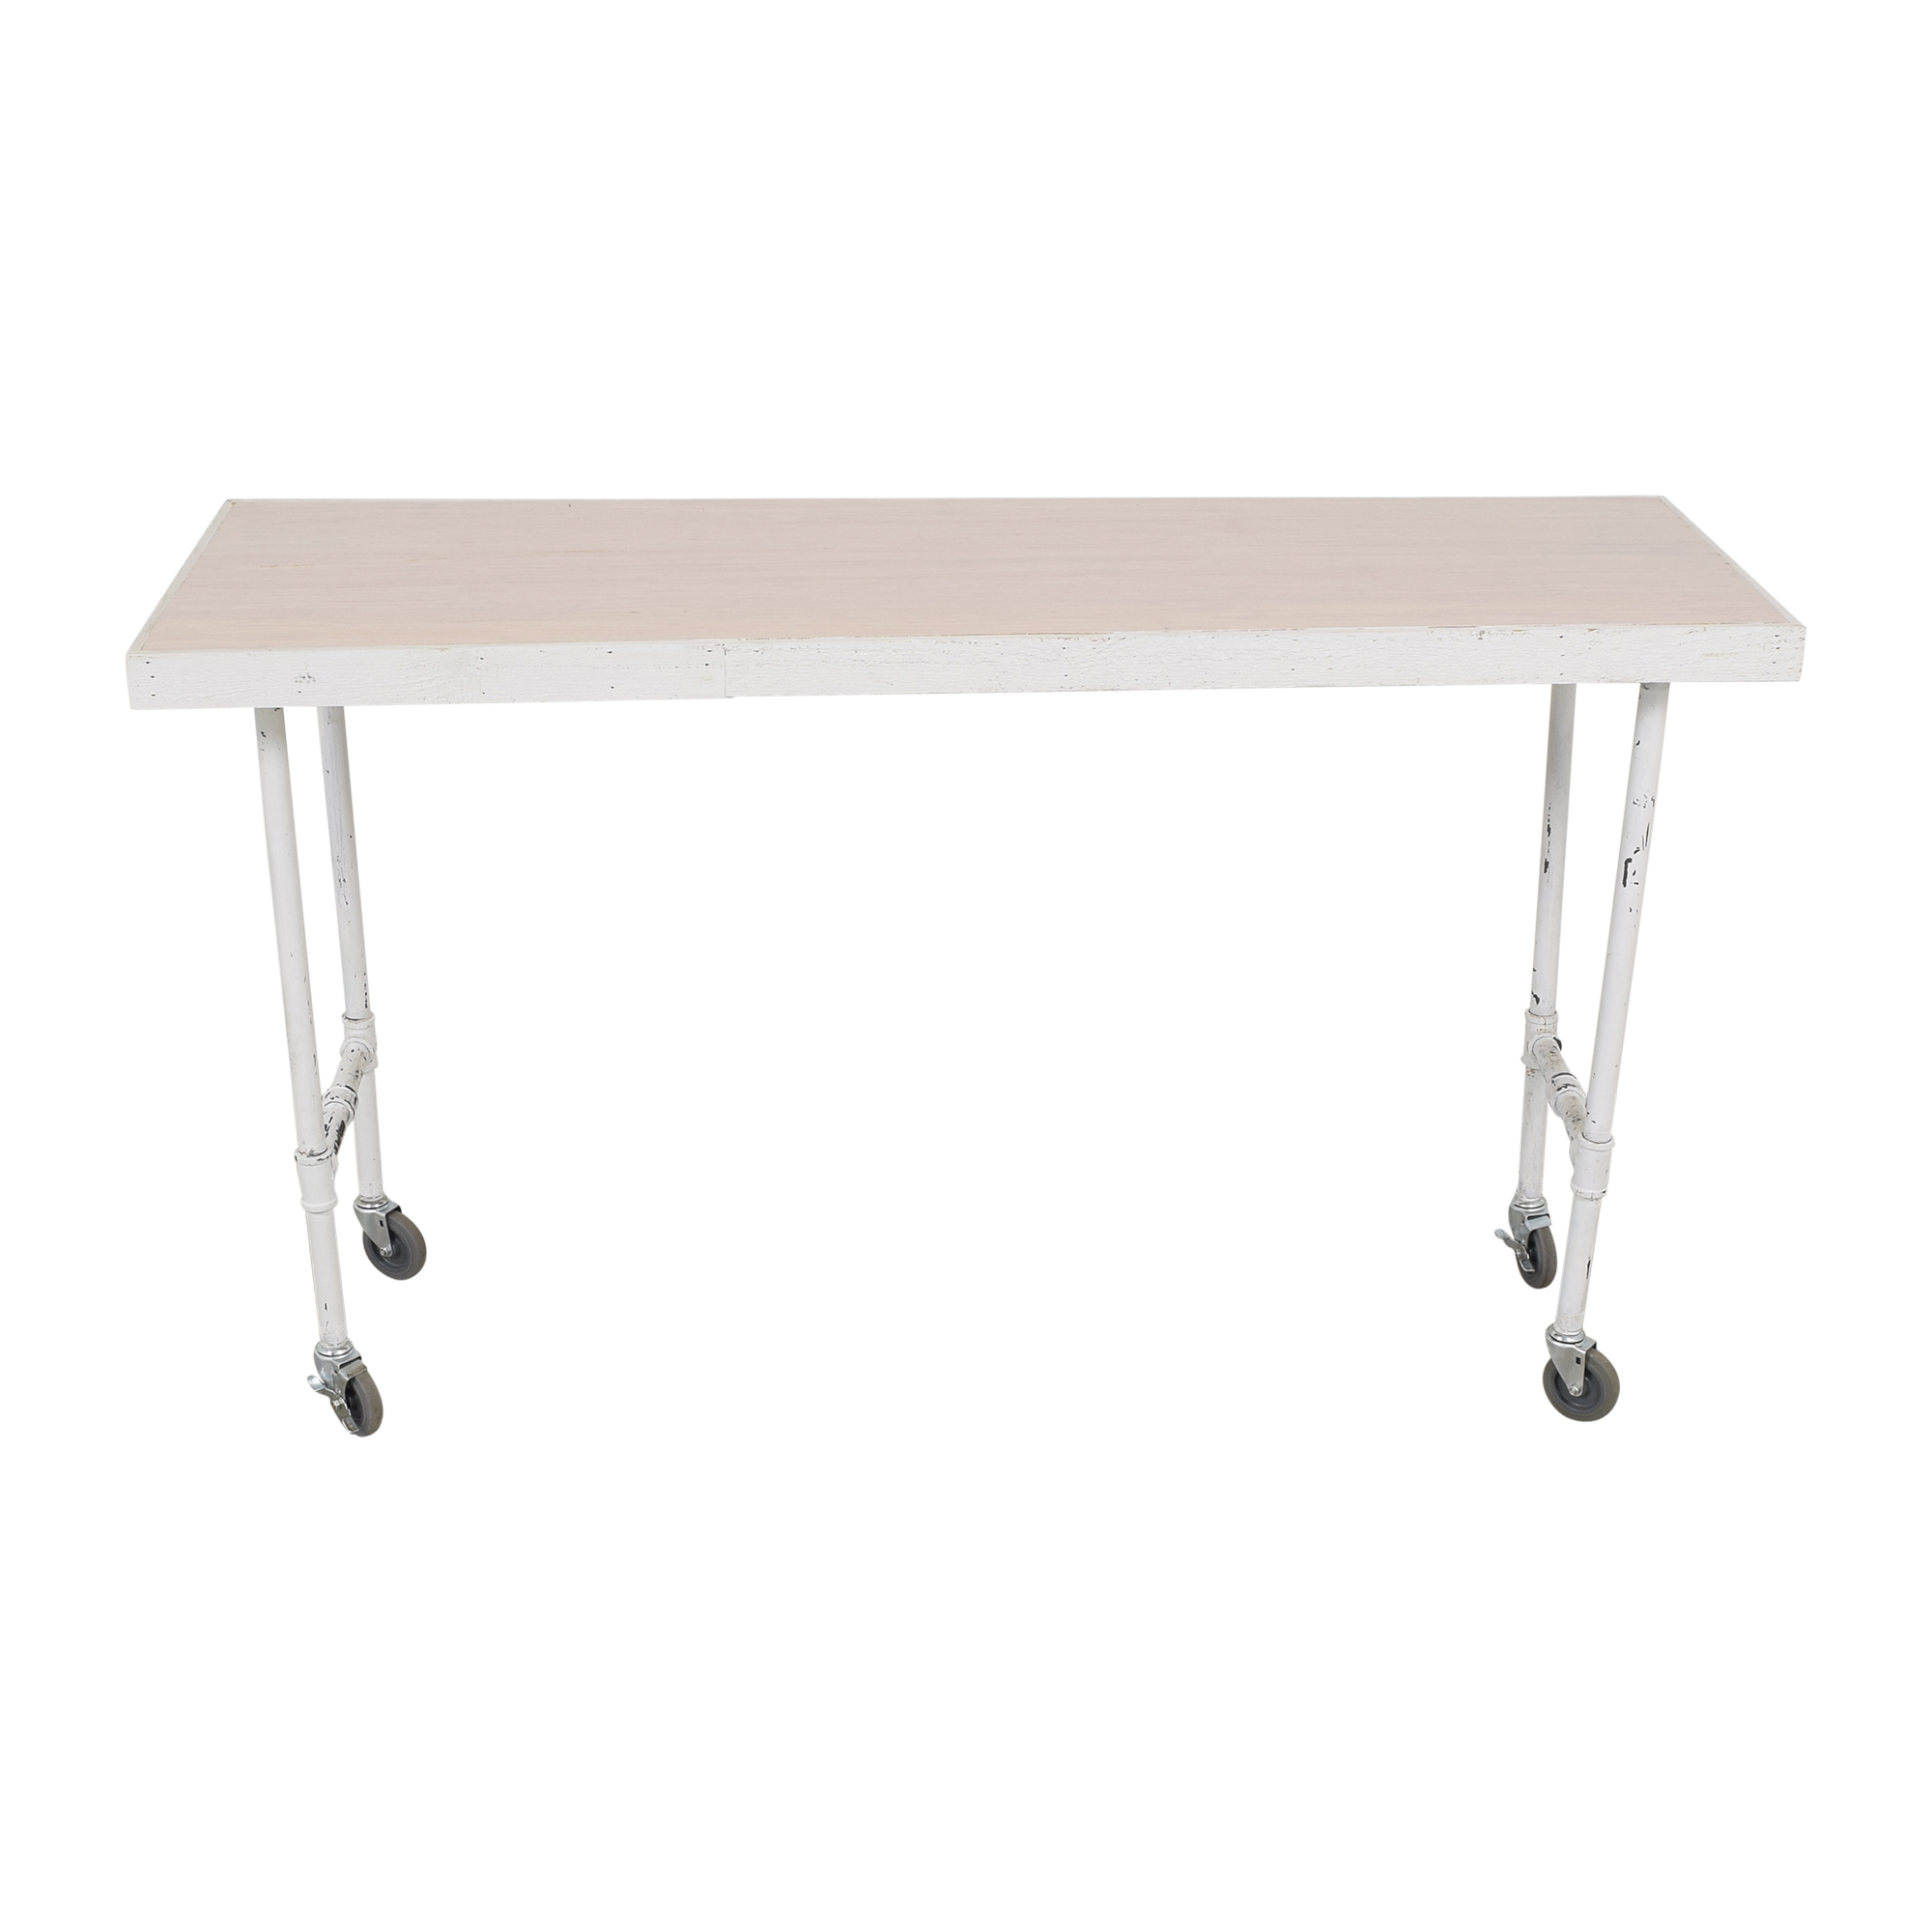 Work Table with Wheels pa